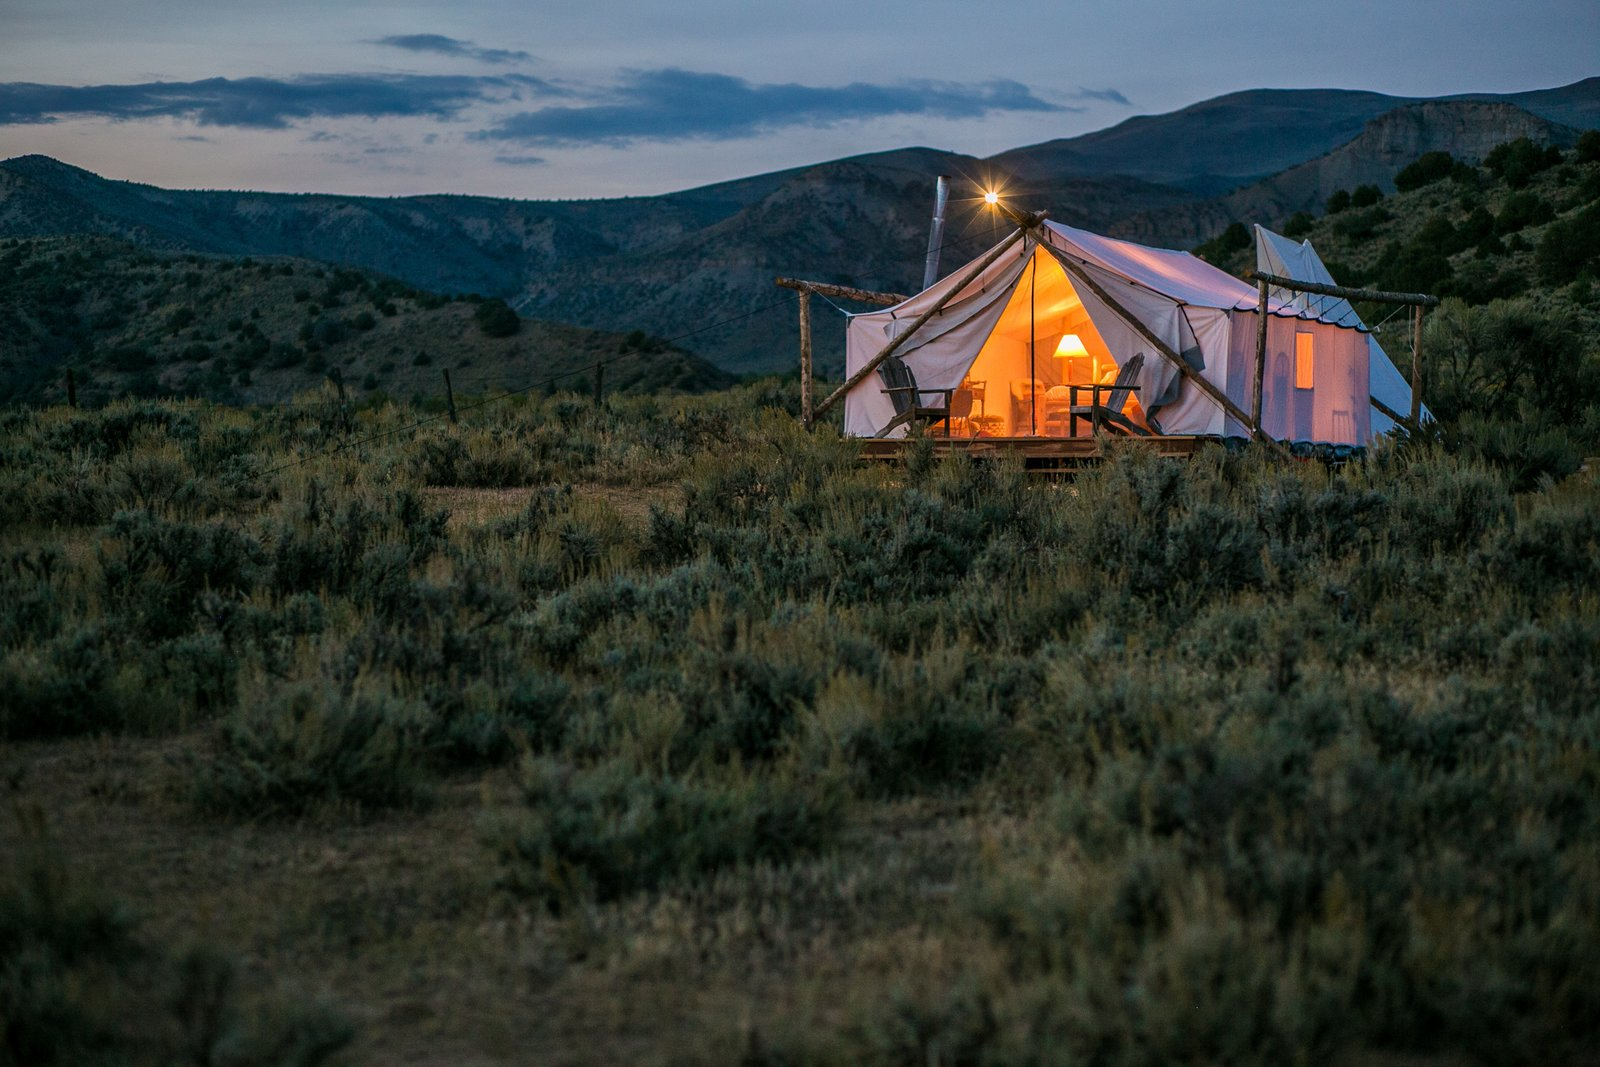 Get The Modern Camping Experience You Crave At One Of